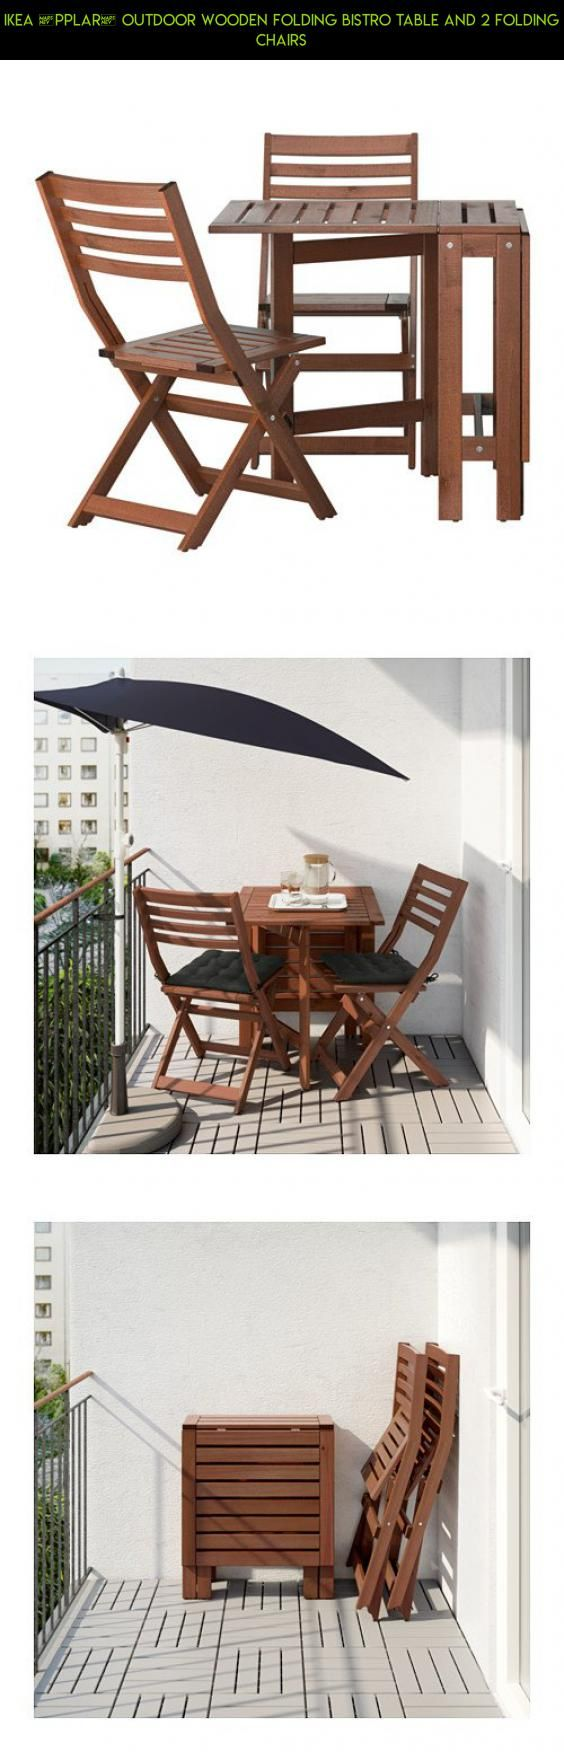 Ikea ÄPPLARÖ Outdoor Wooden Folding Bistro Table And 2 Folding Chairs #fpv  #gadgets #